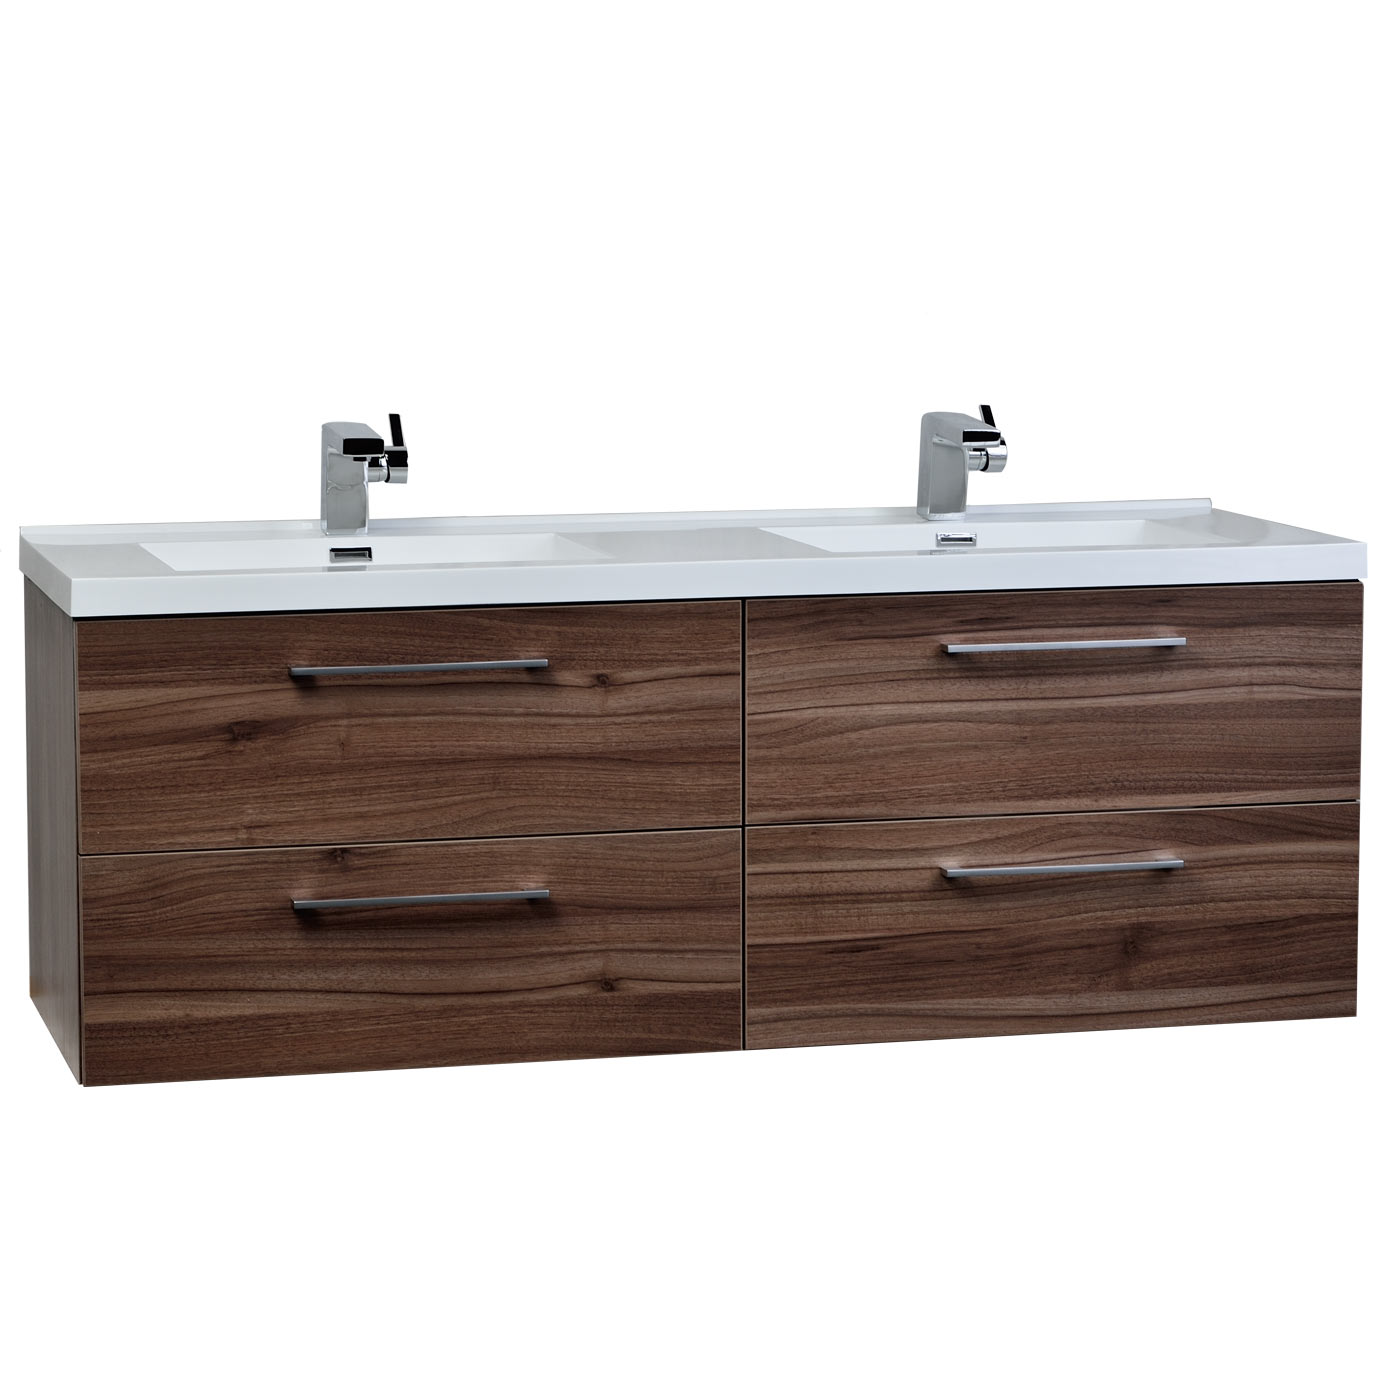 . Buy Bathroom Vanities in San Francisco Bay Area